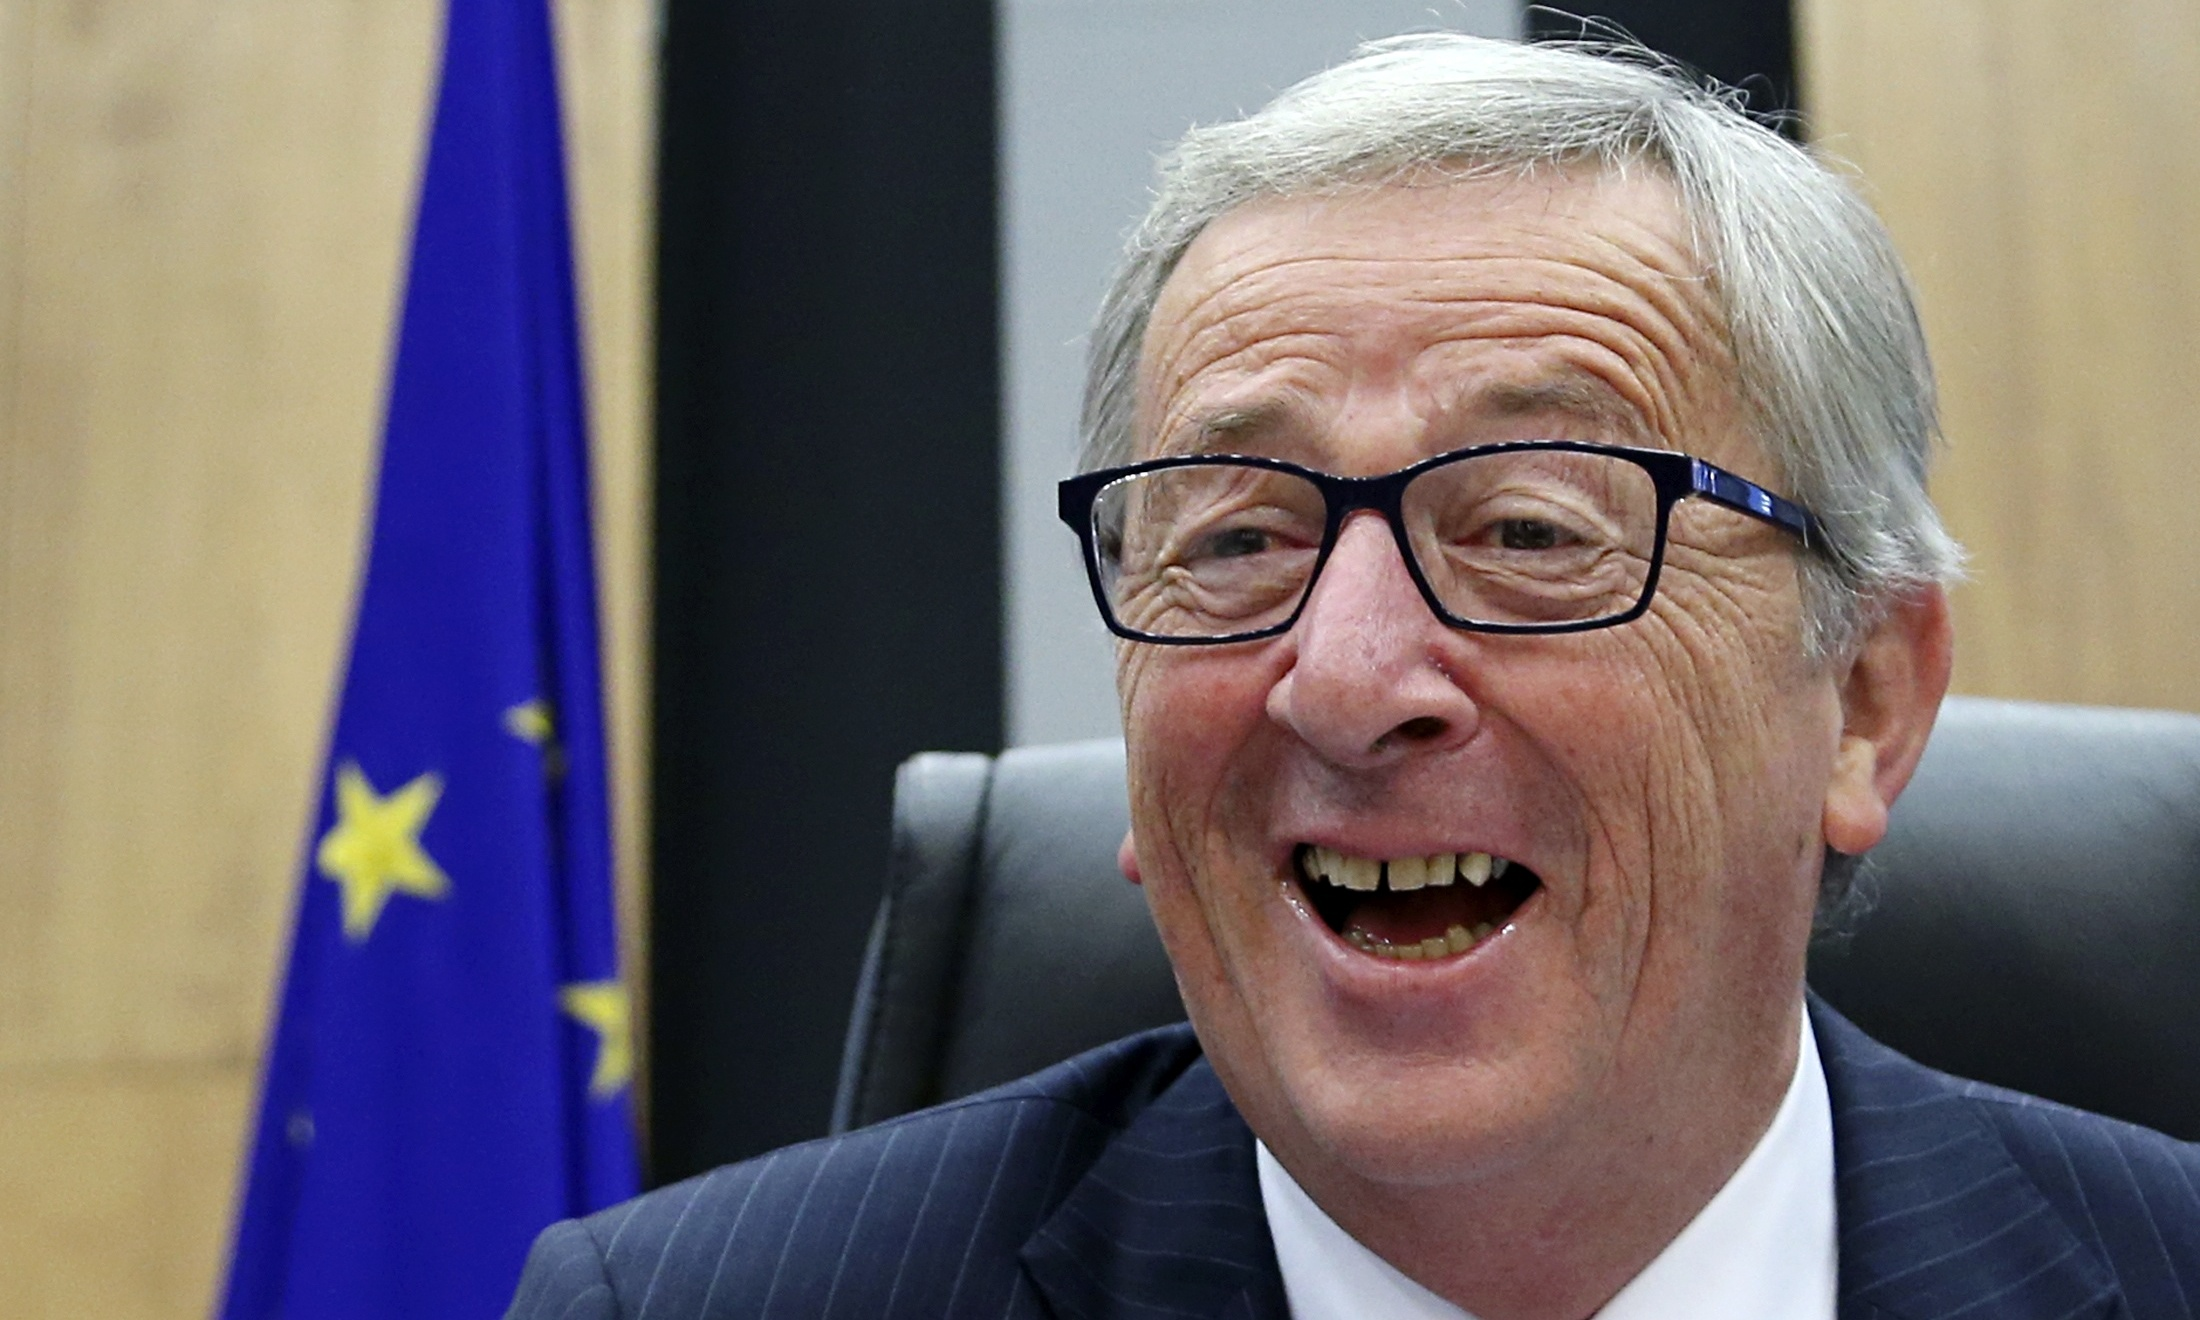 THE EUROPEAN COMMISSION'S PENCHANT FOR FAILURES